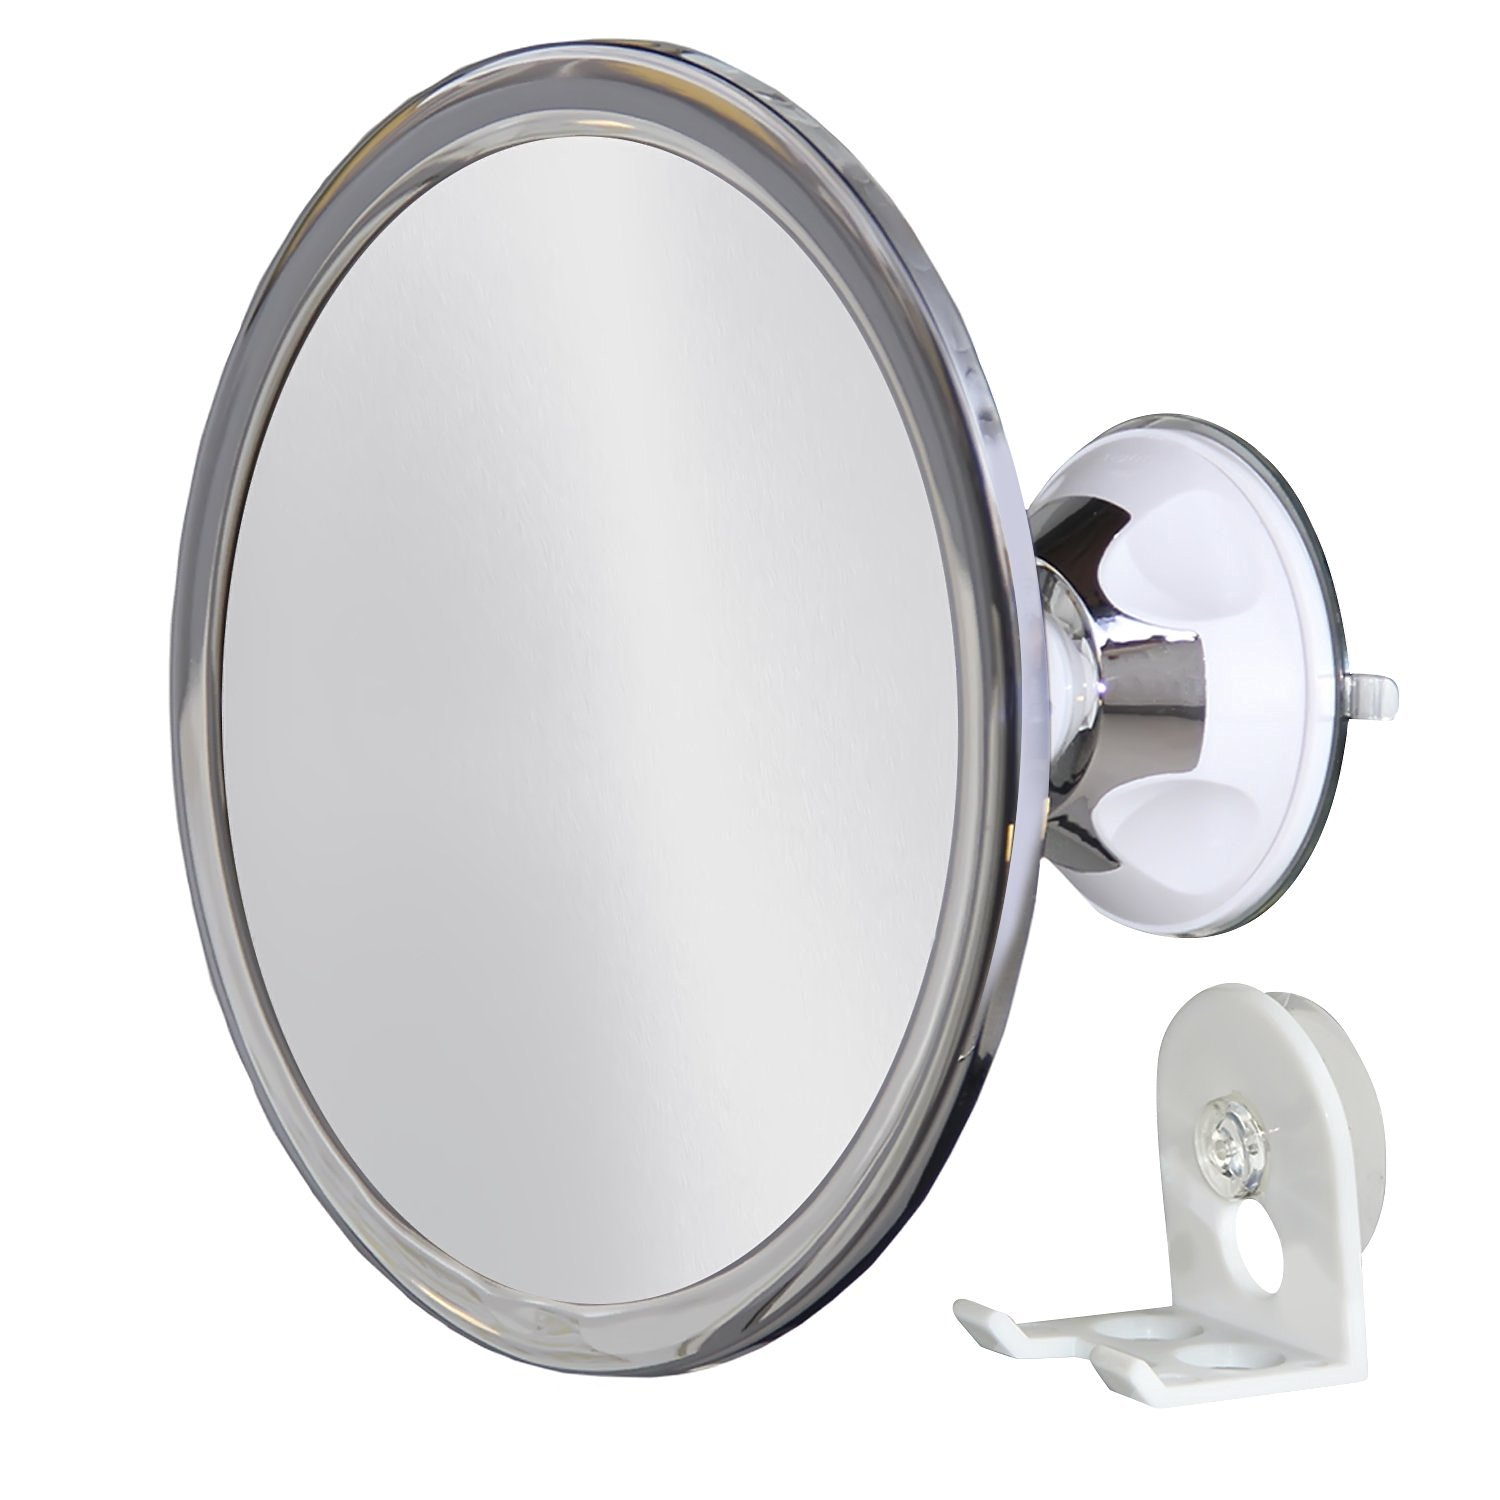 Upper West Connection No Fog Shower Mirror with Rotating, Locking Suction & Adjustable Arm – Available in 3 Magnification Options